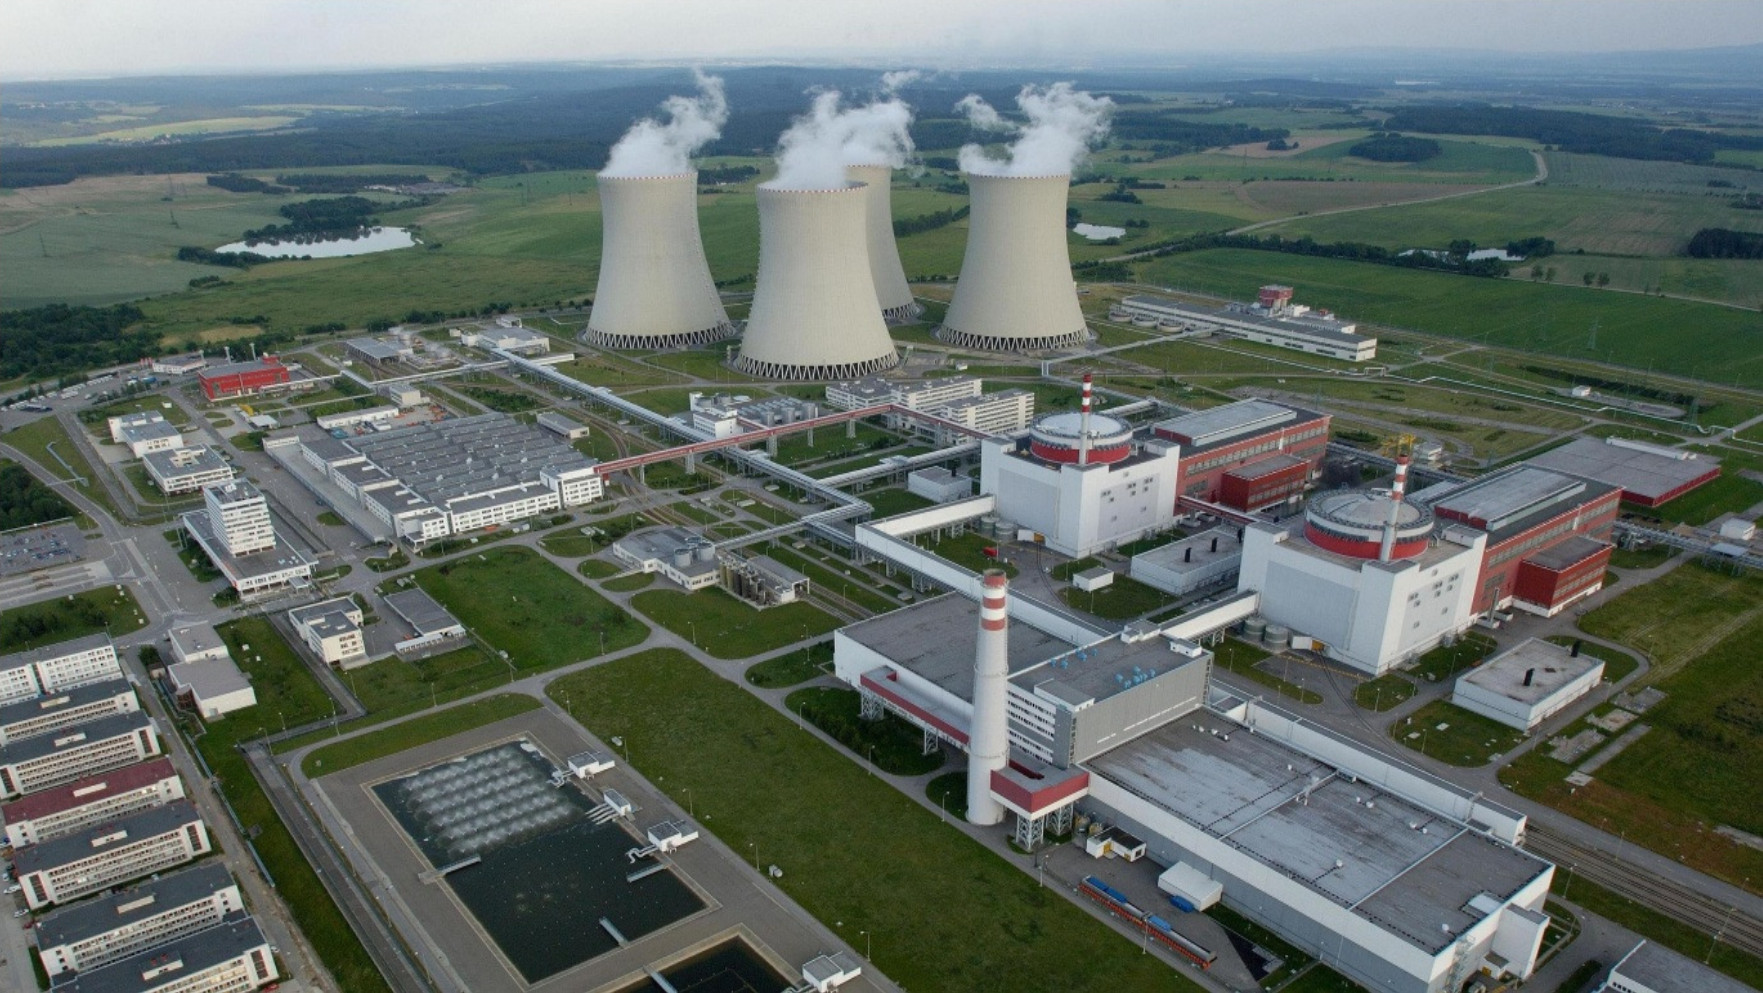 Construction of the nuclear power plant in Akkuyu in full swing